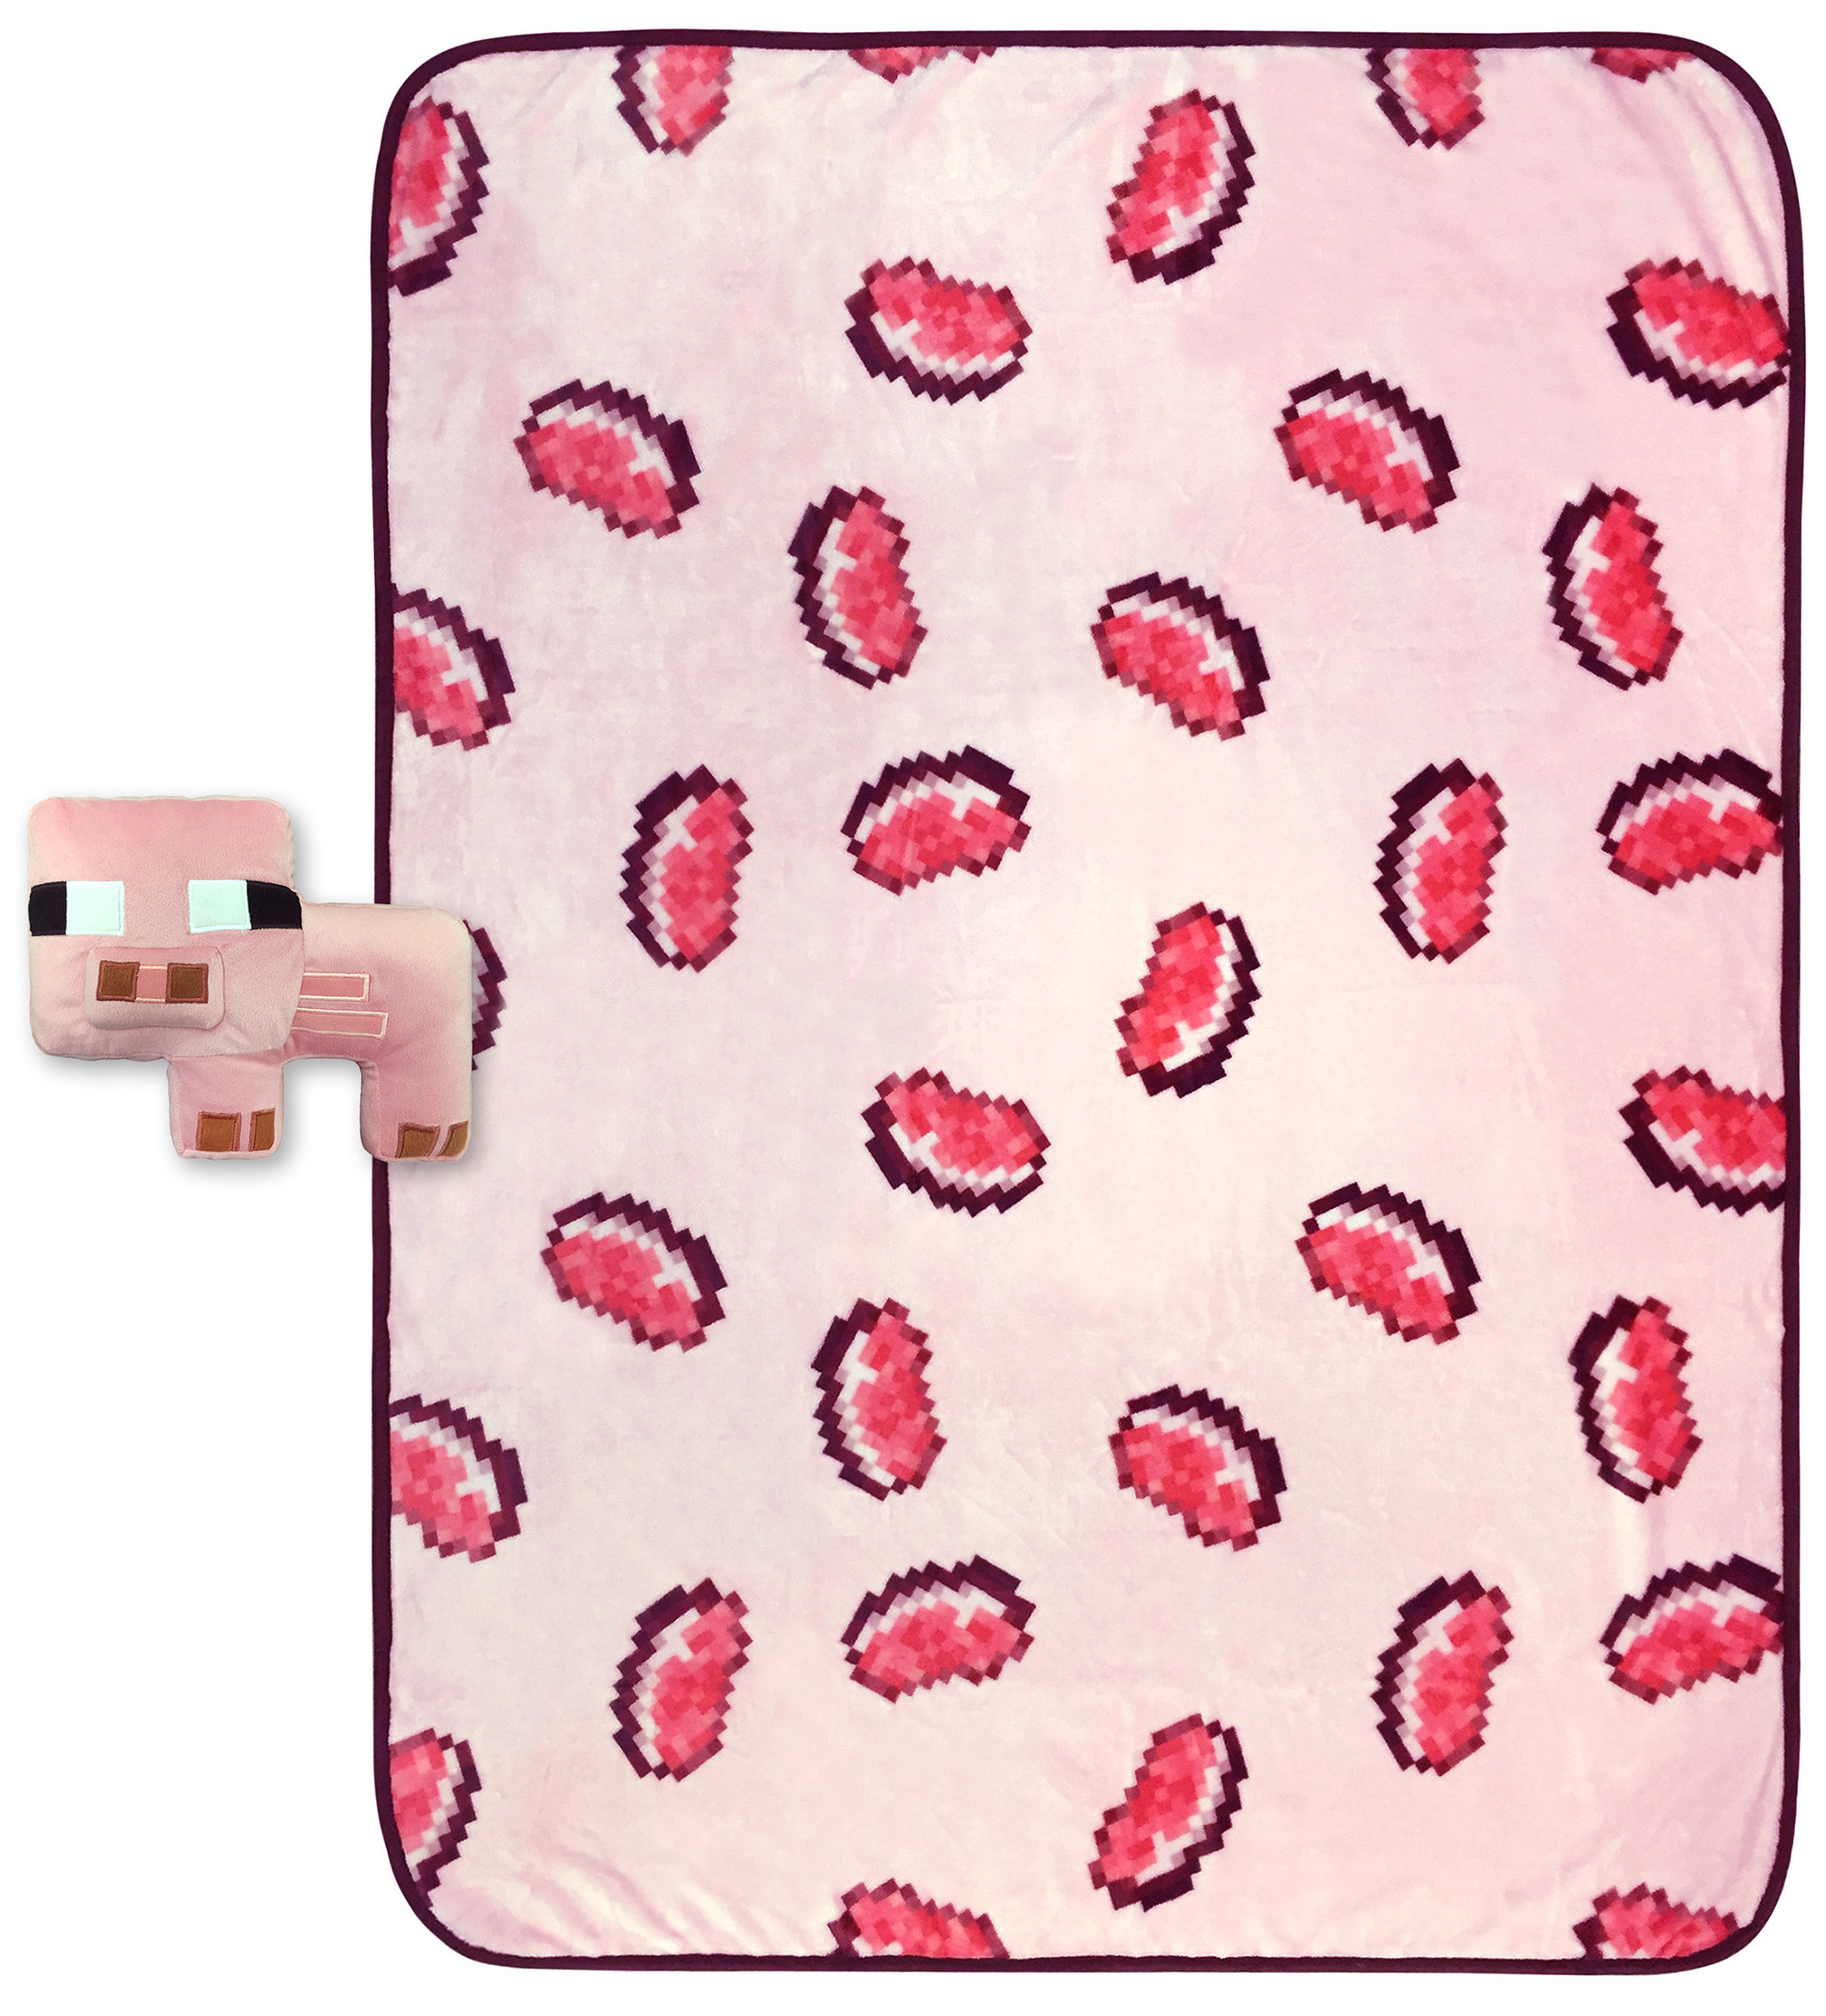 MineCraft Small Pig Shaped Pillow and Pork Chop Throw Set